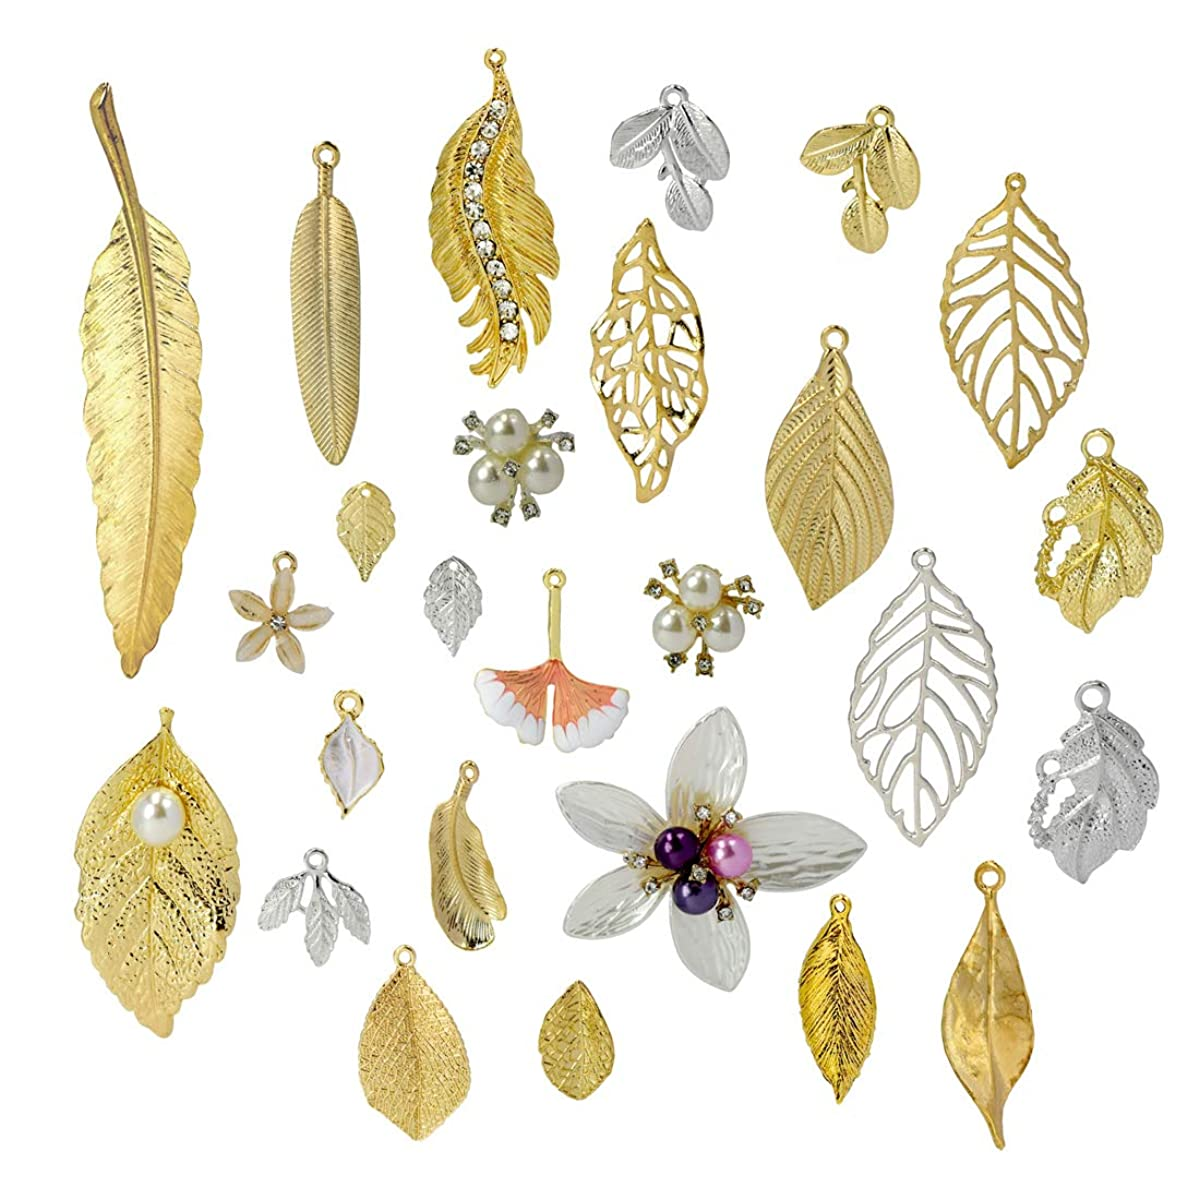 ZIIYAN 52Pcs Different Style Gold/Siliver Plated Metal Leaf Shape Charms Pendant Crafting Jewelry Findings Making Accessory for DIY Necklace Bracelet